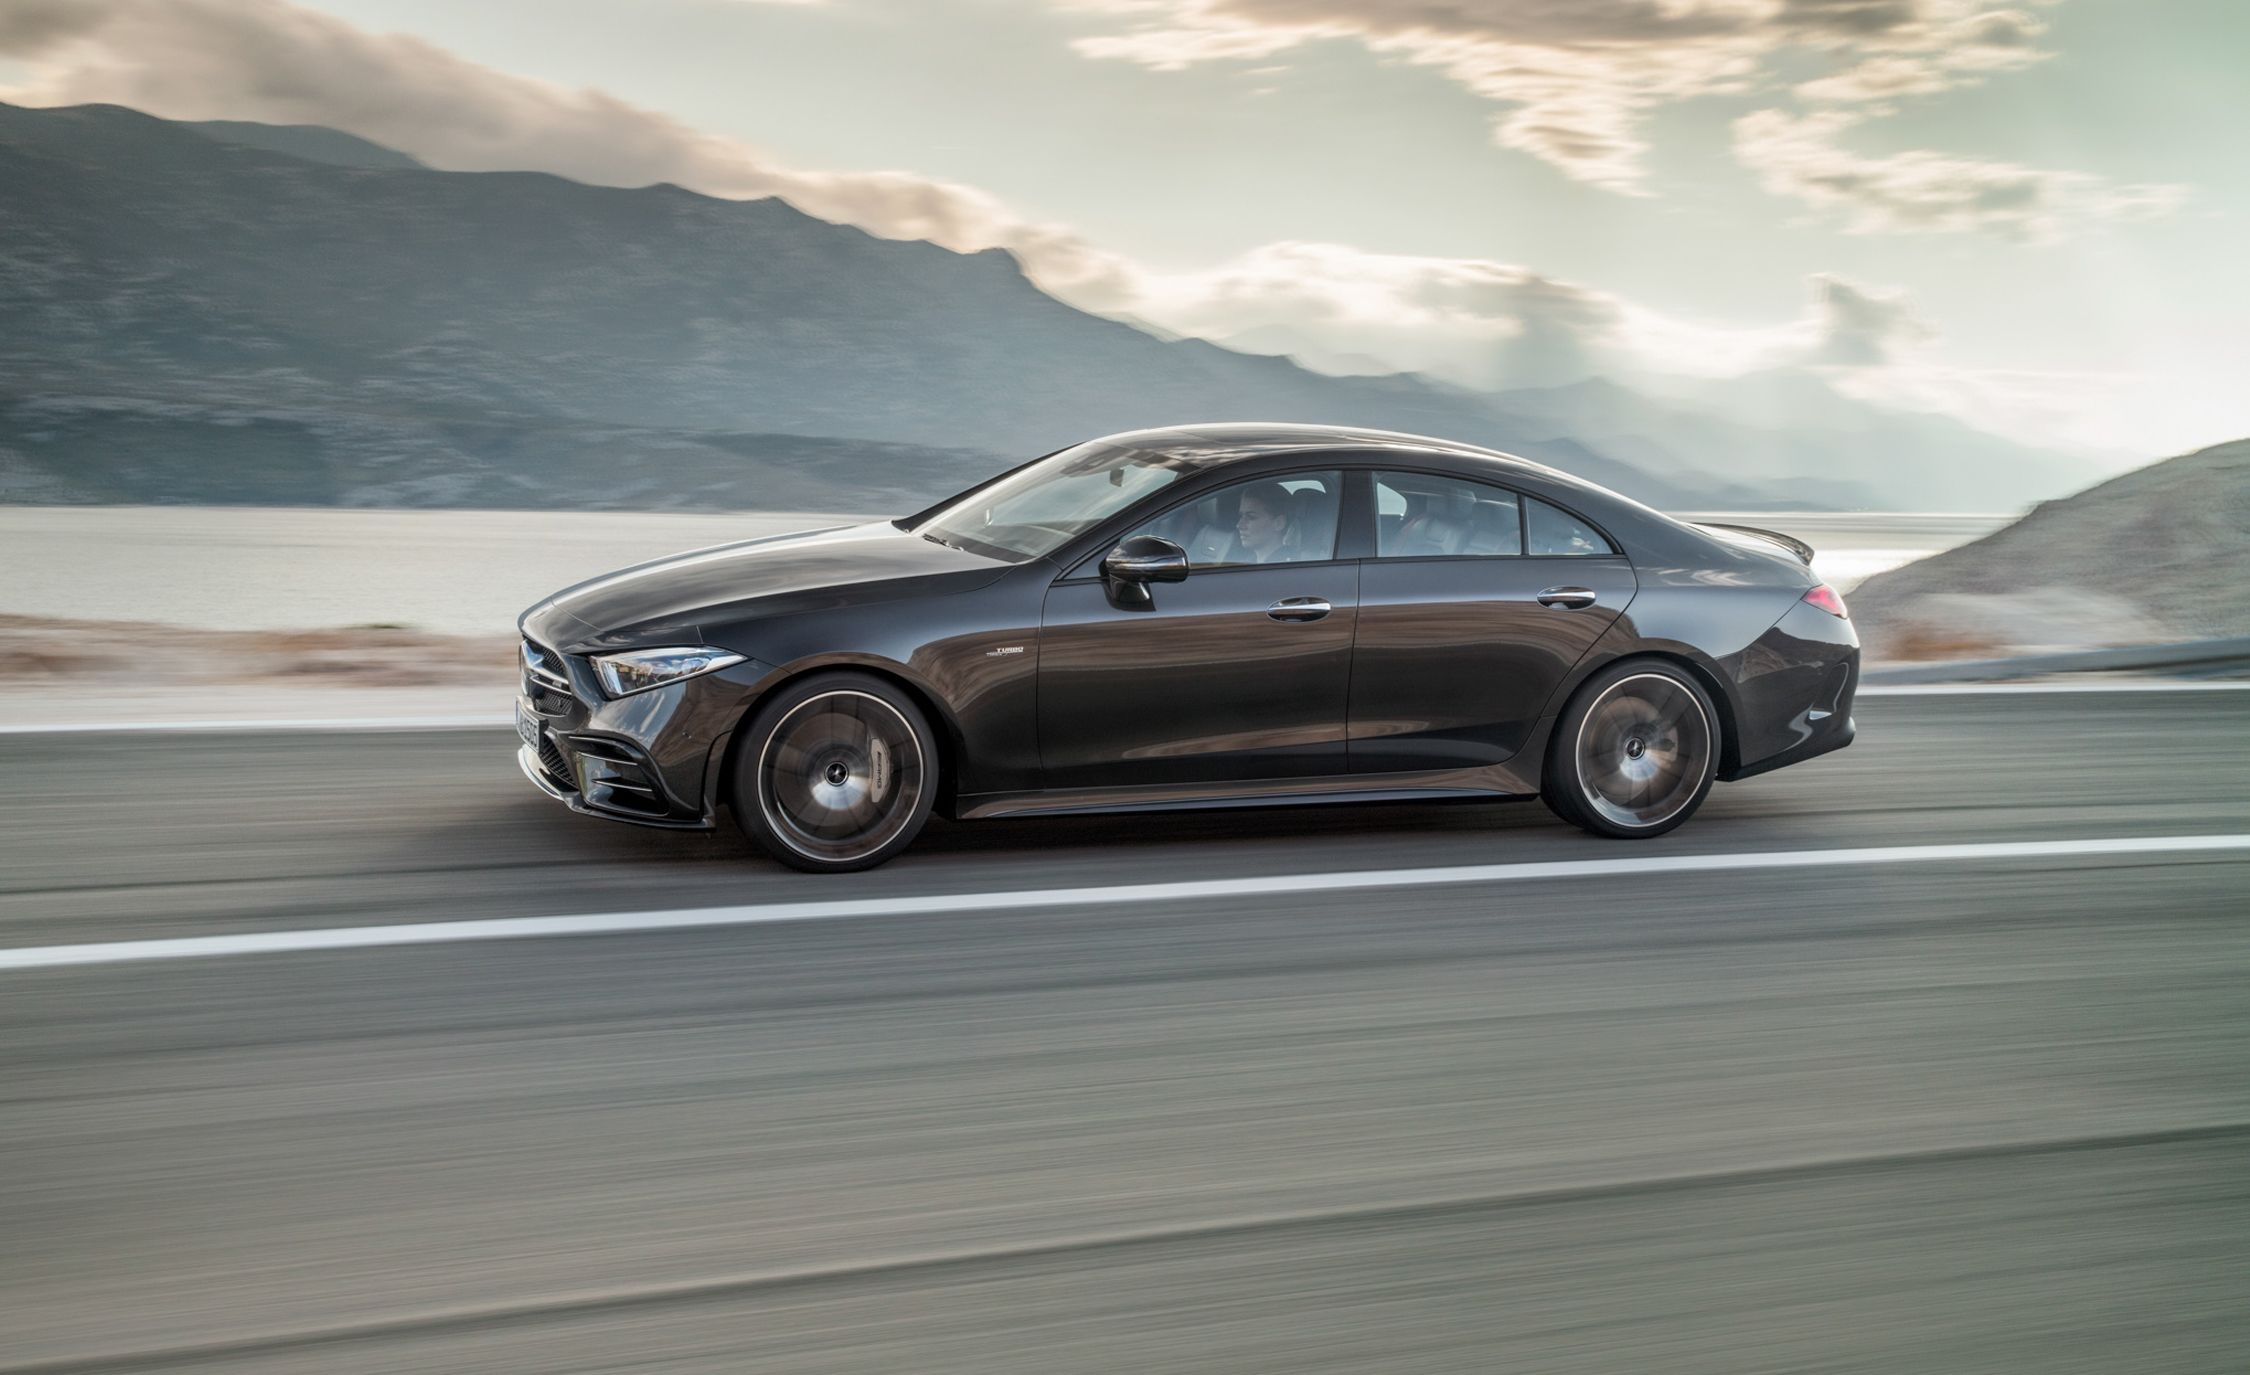 Mercedes amg cls63 s 4matic reviews mercedes amg cls63 s for Best time of year to buy a mercedes benz